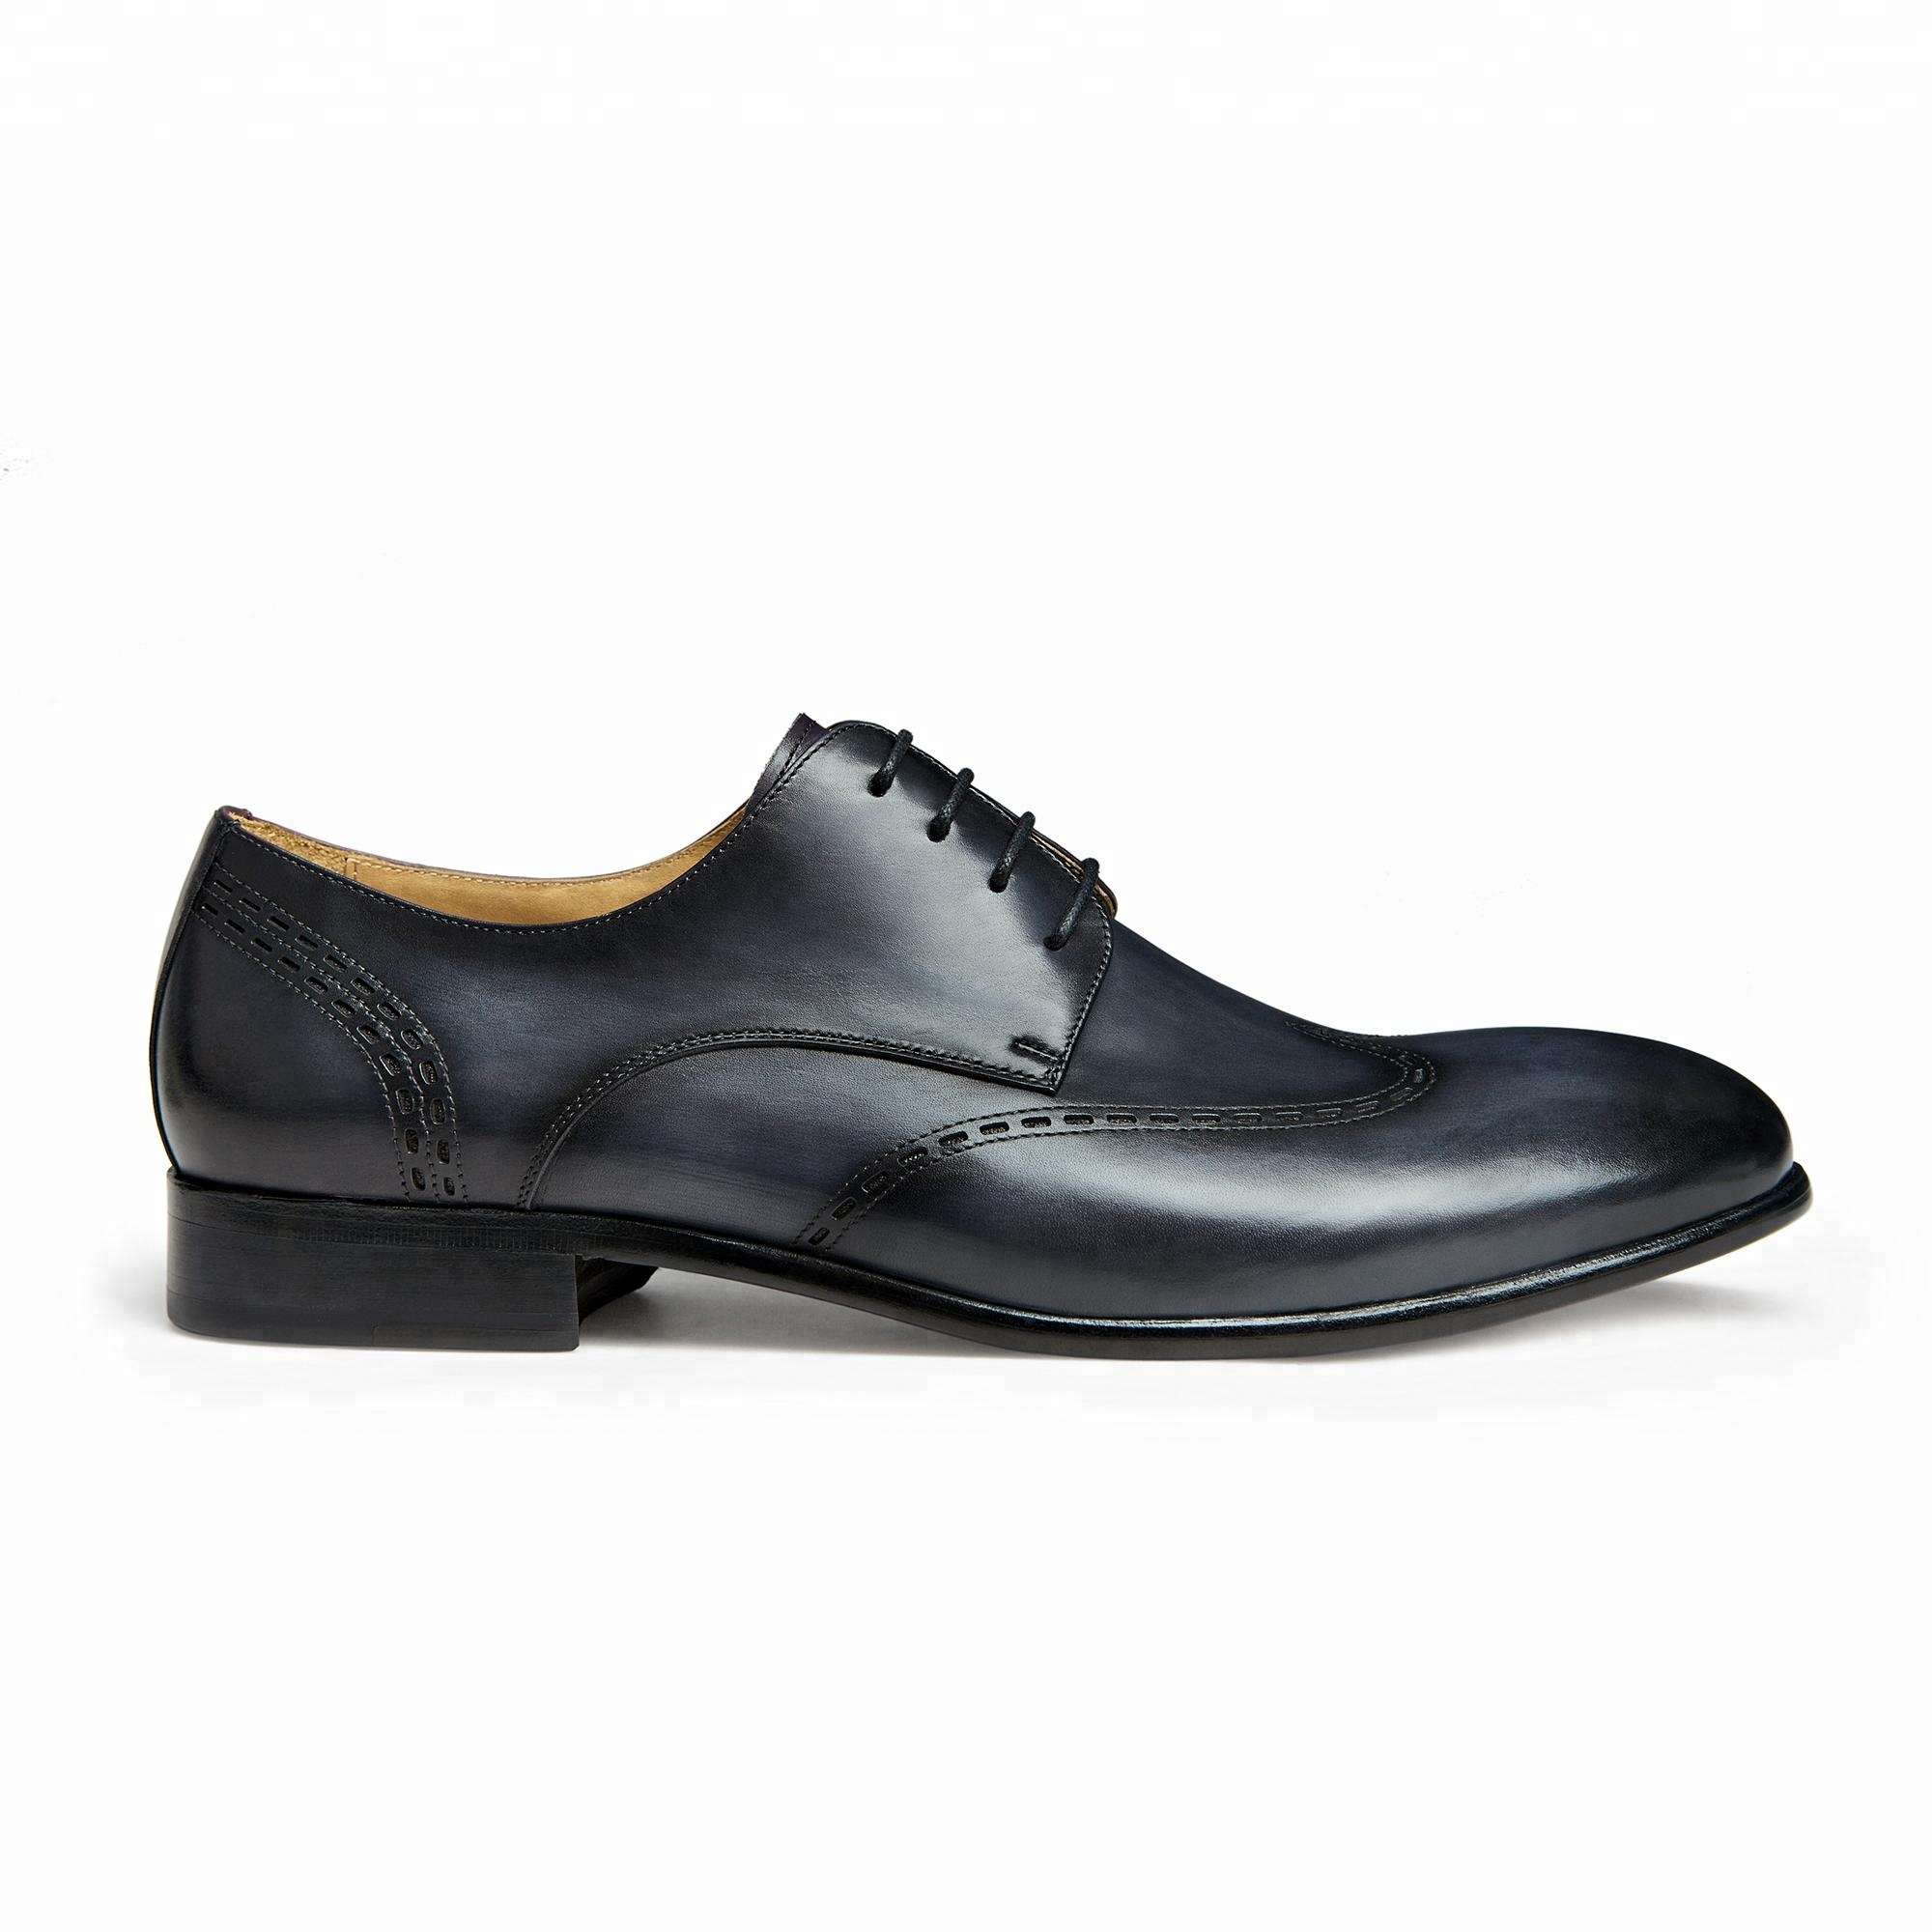 2018 hot selling navy blue men dress shoes